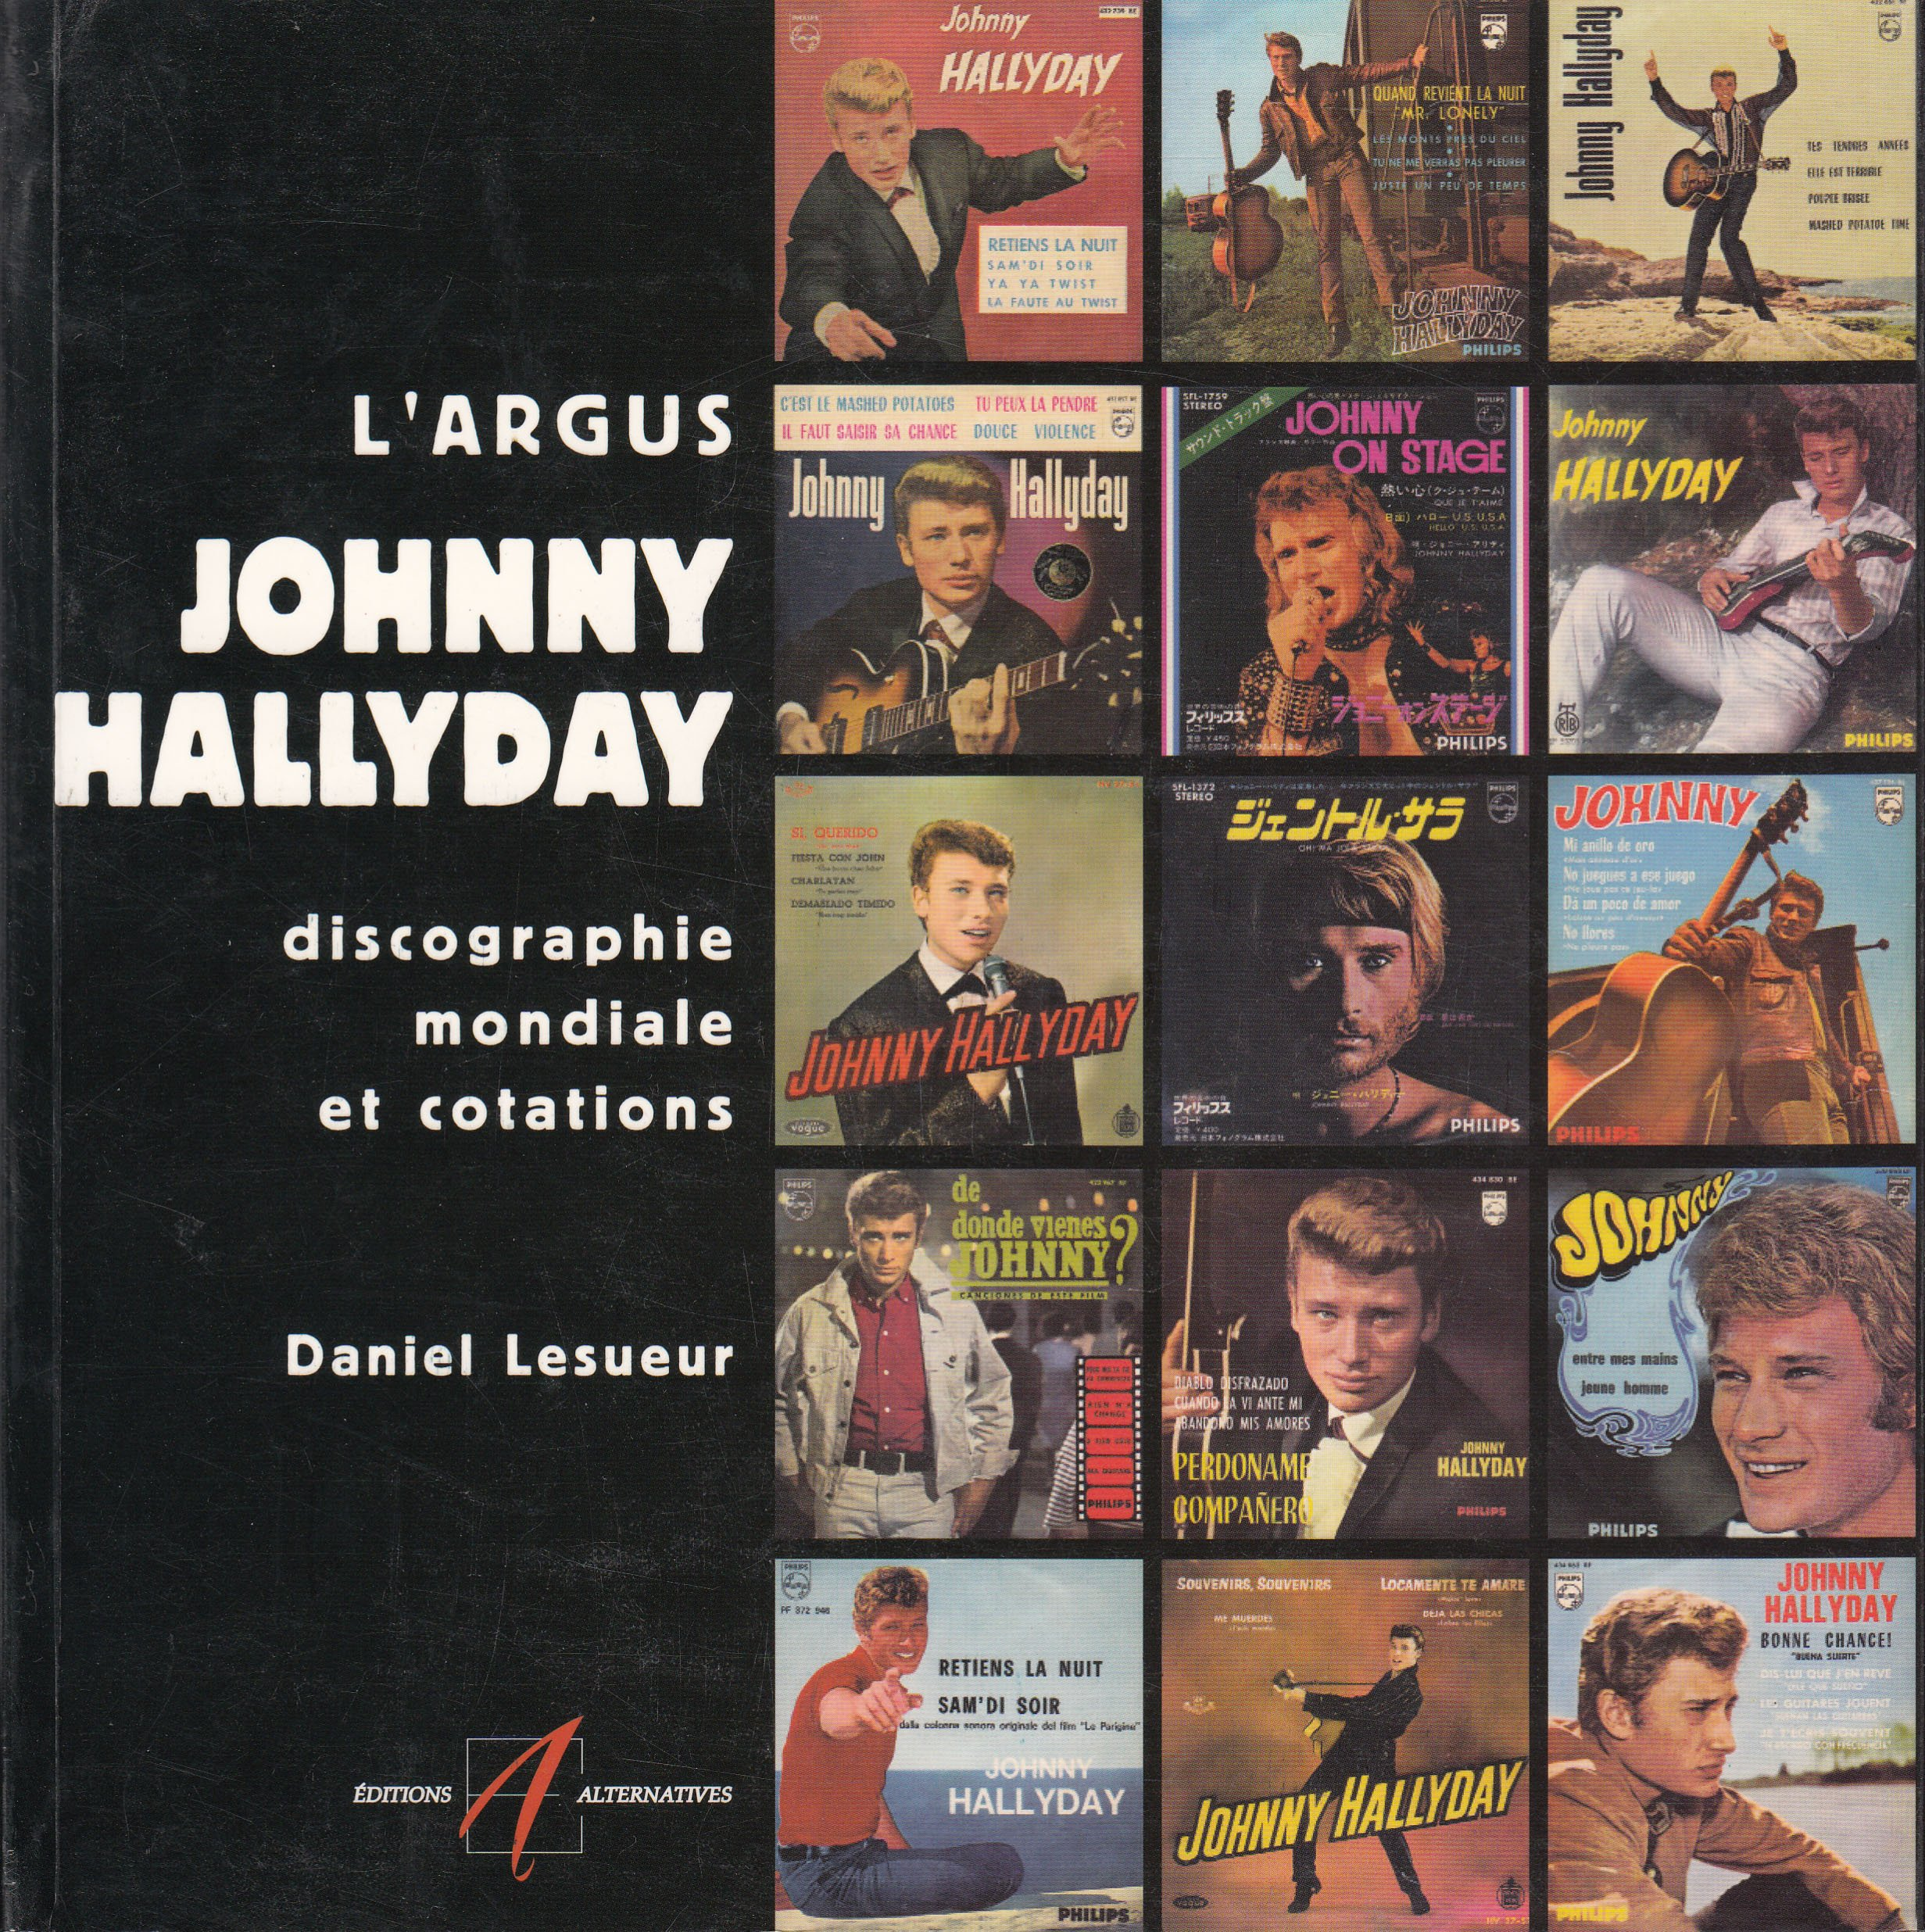 Discographie Johnny Hallyday >> Argus Johnny Hallyday Discographie Mondiale Et Cotations Amazon